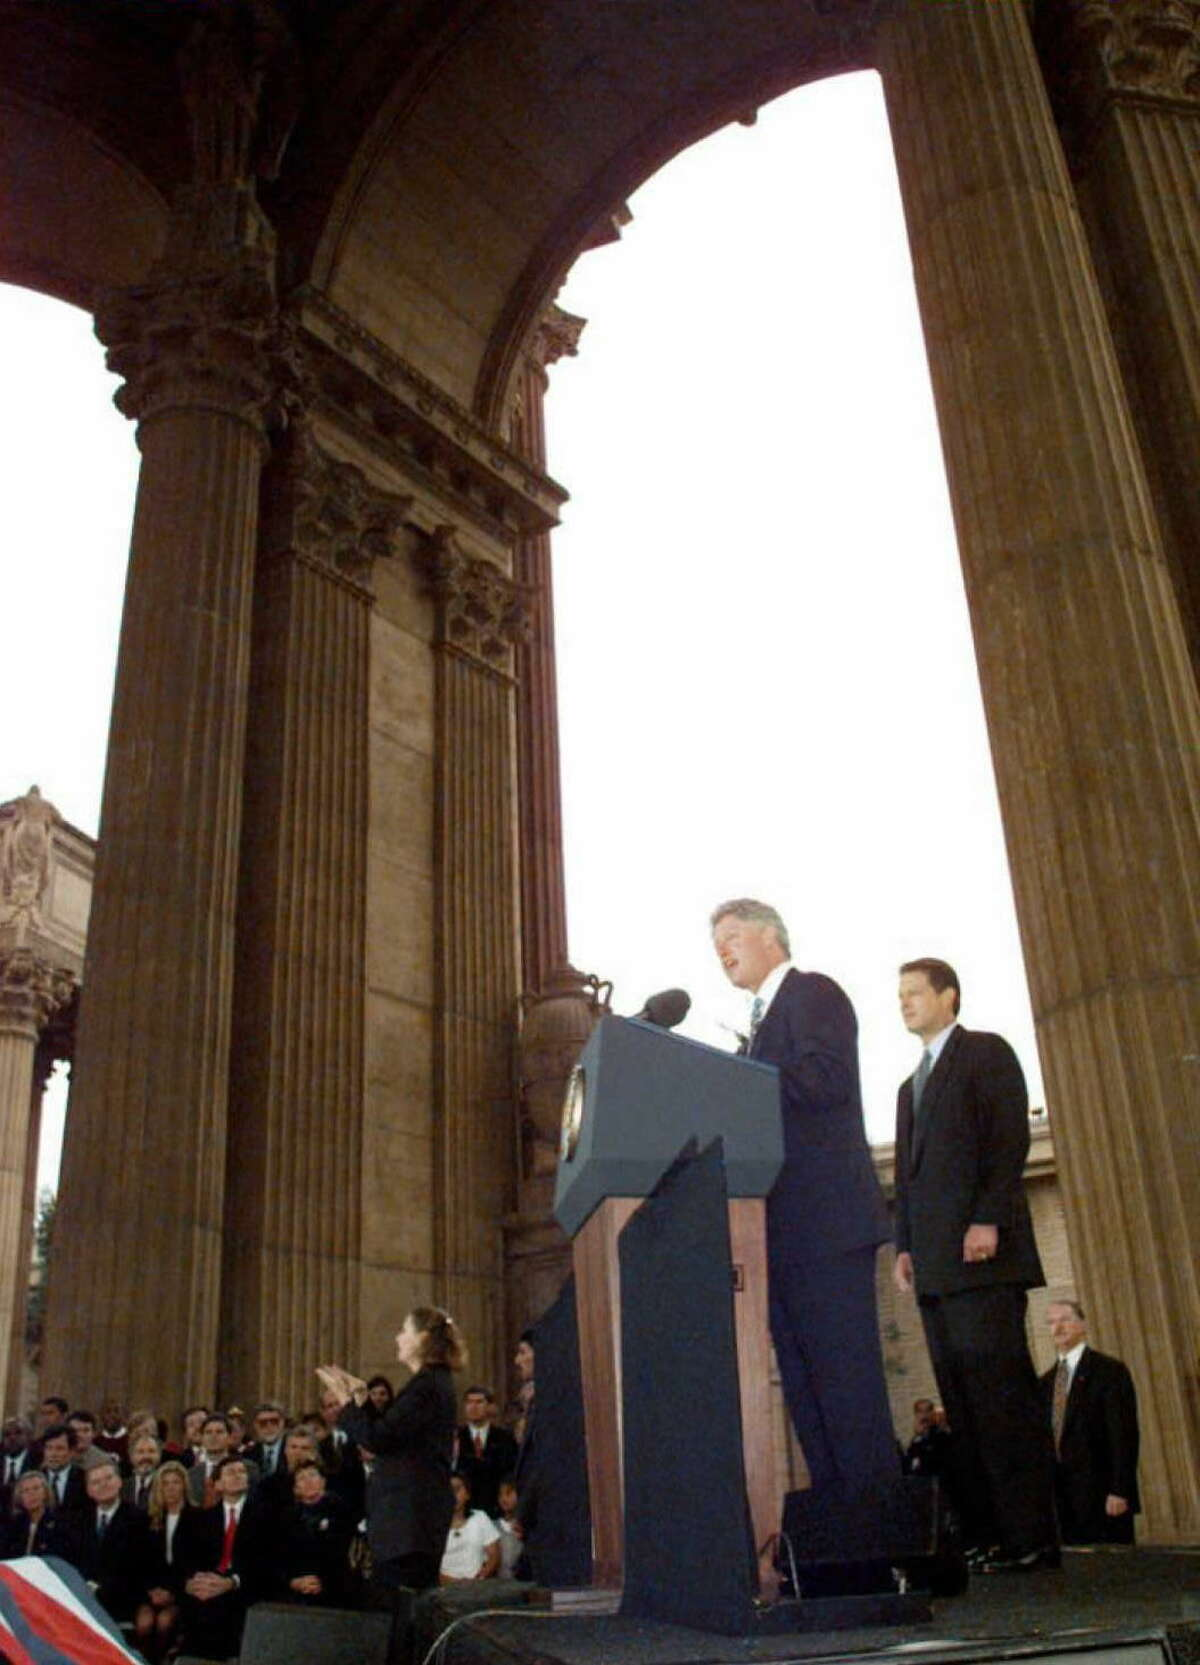 1995: US President Bill Clinton, center, announces a program to wire every California school with computers during a speech at the outdoor rotunda of the Exploratorium in San Fransisco, California, 21 September. Vice President Al Gore stands behind President Clinton. Both the president and vice president were wrapping up a four-state fundraising trip.